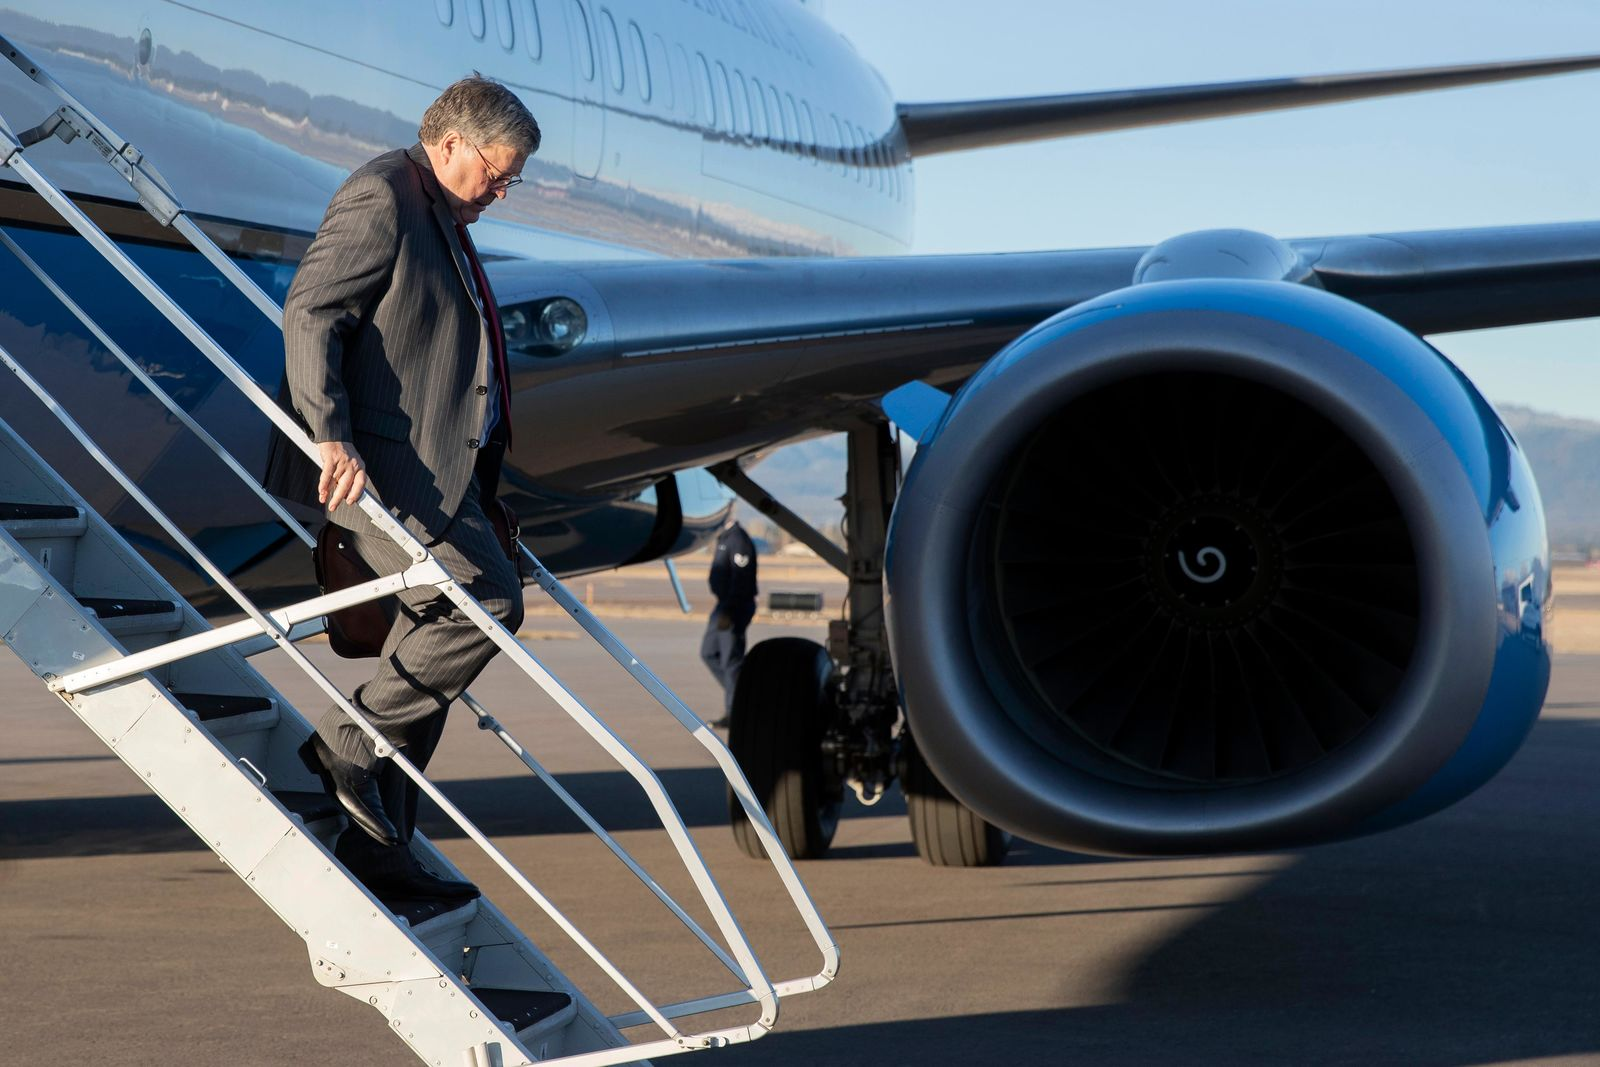 Attorney General William Barr steps off an aircraft at Glacier Park International Airport, Thursday, Nov. 21, 2019, in Kalispell, Mont. Barr is scheduled Friday to visit Flathead Reservation to address the issue of missing and murdered indigenous persons. (AP Photo/Patrick Semansky)